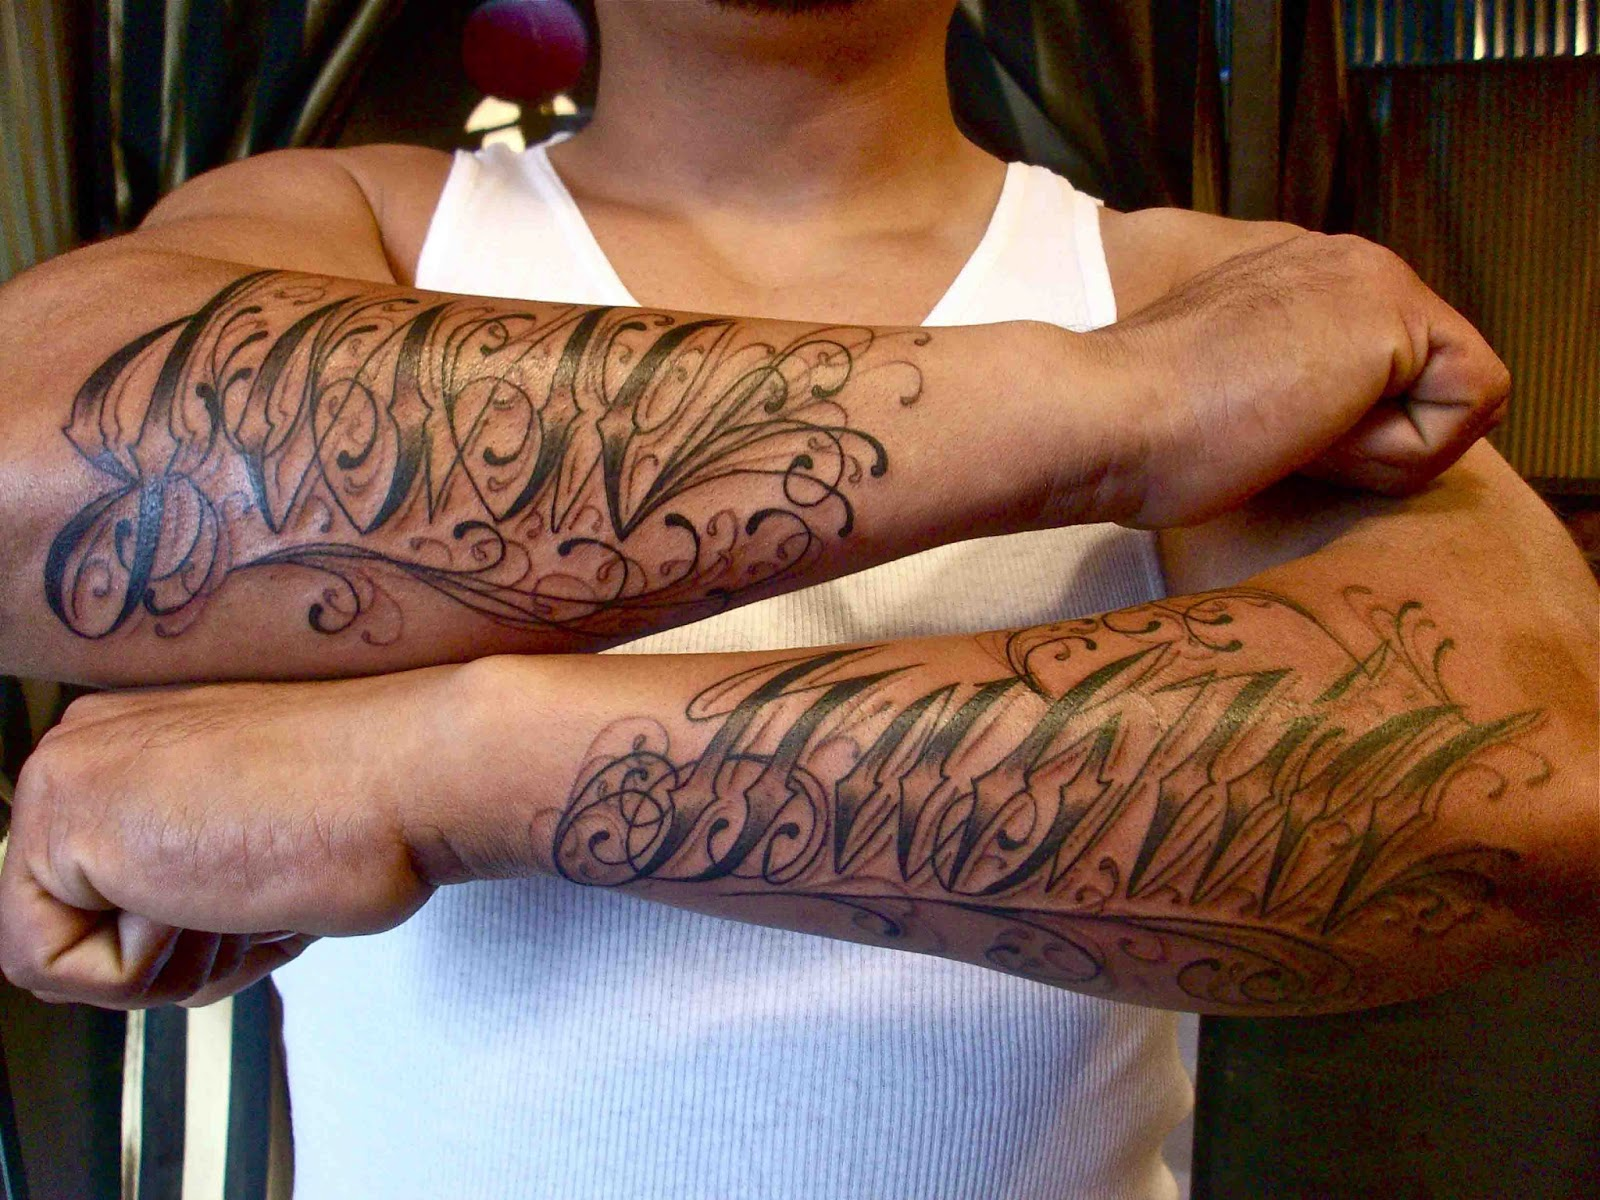 script tattoos3d tattoos. Black Bedroom Furniture Sets. Home Design Ideas